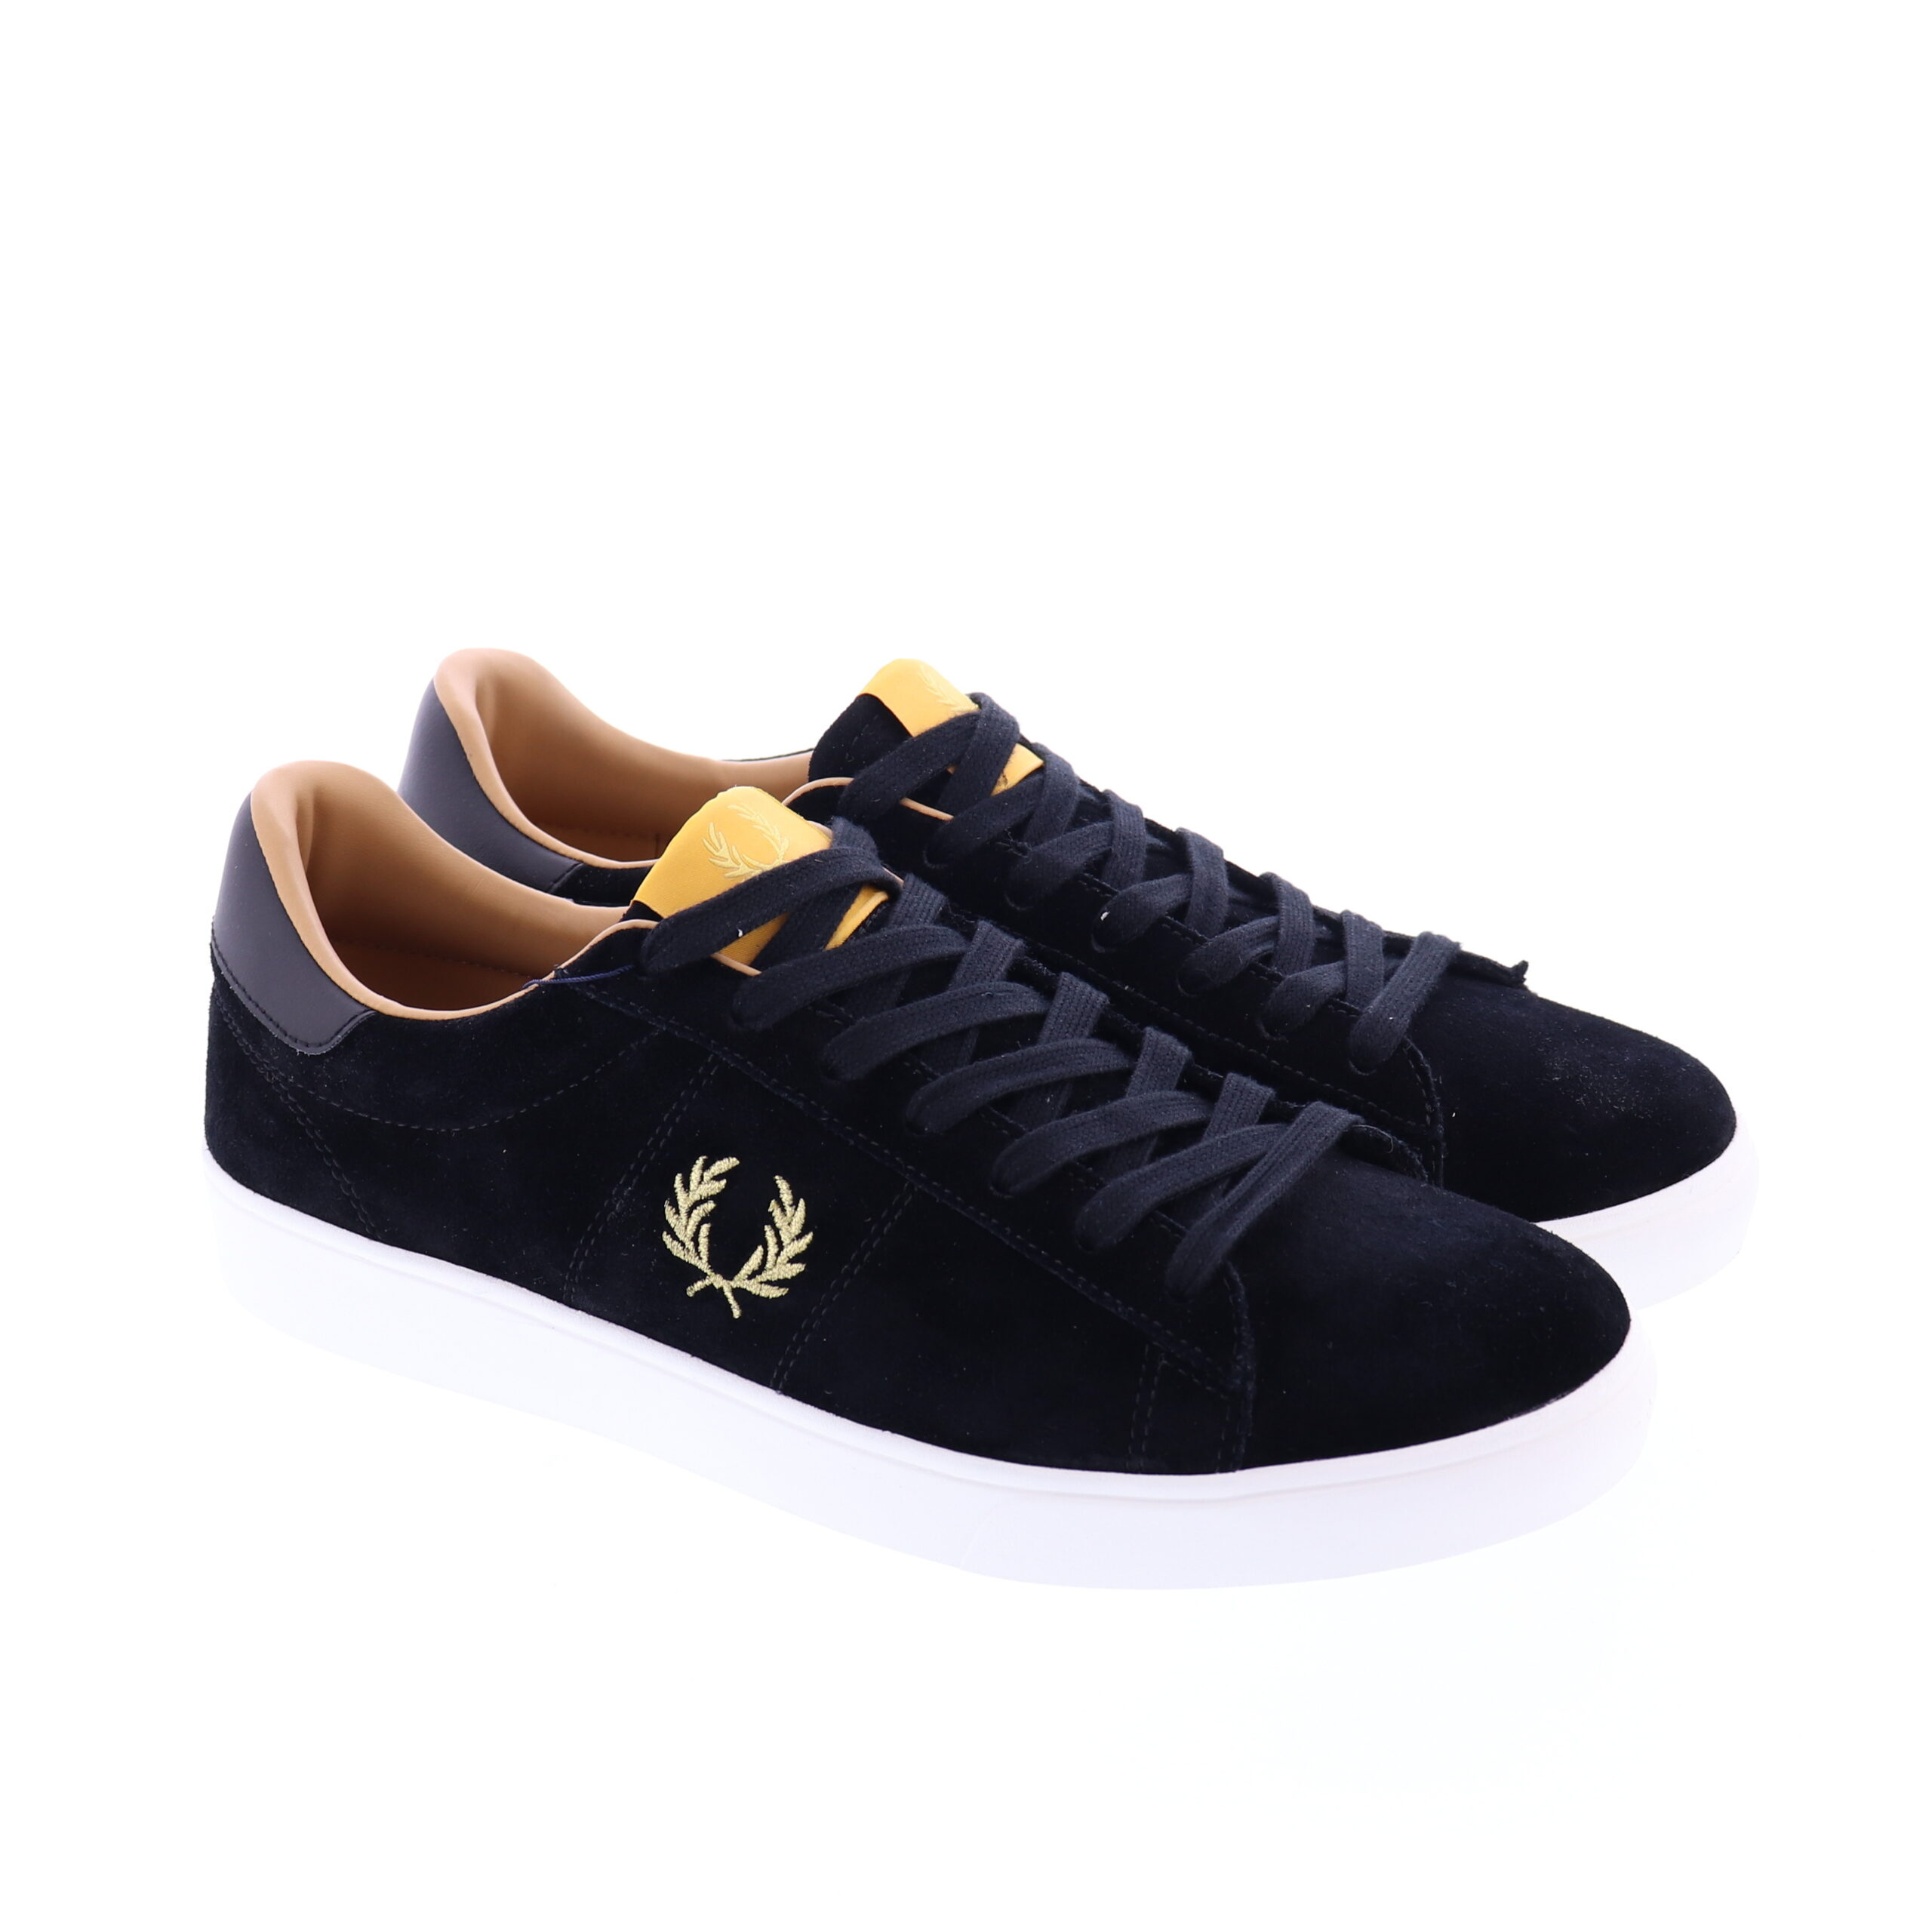 Mike's Just for Man - Fred Perry Sneakers